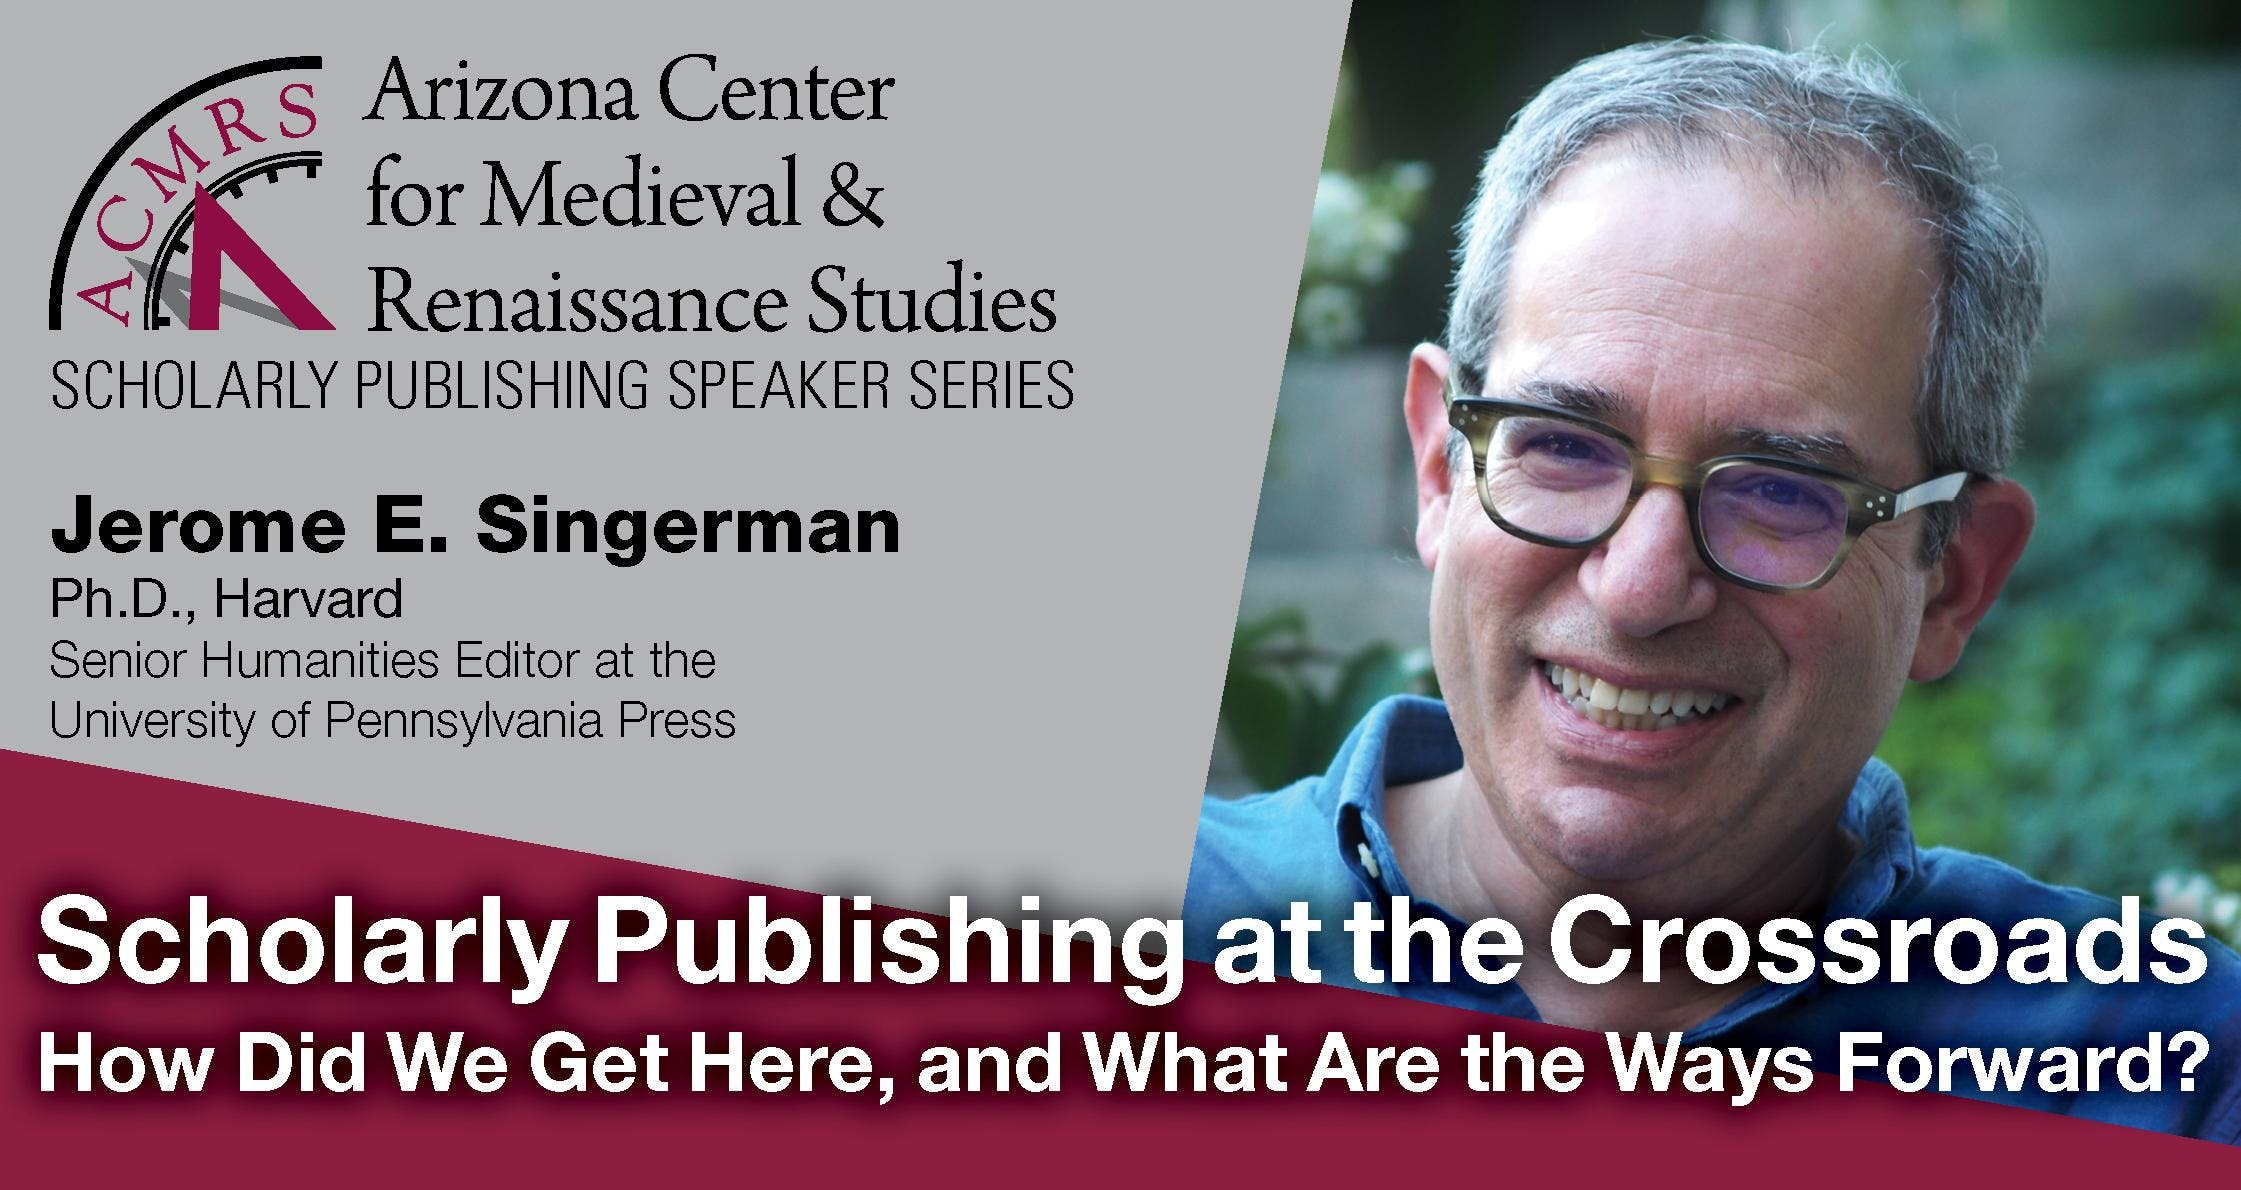 Scholarly Publishing at the Crossroads